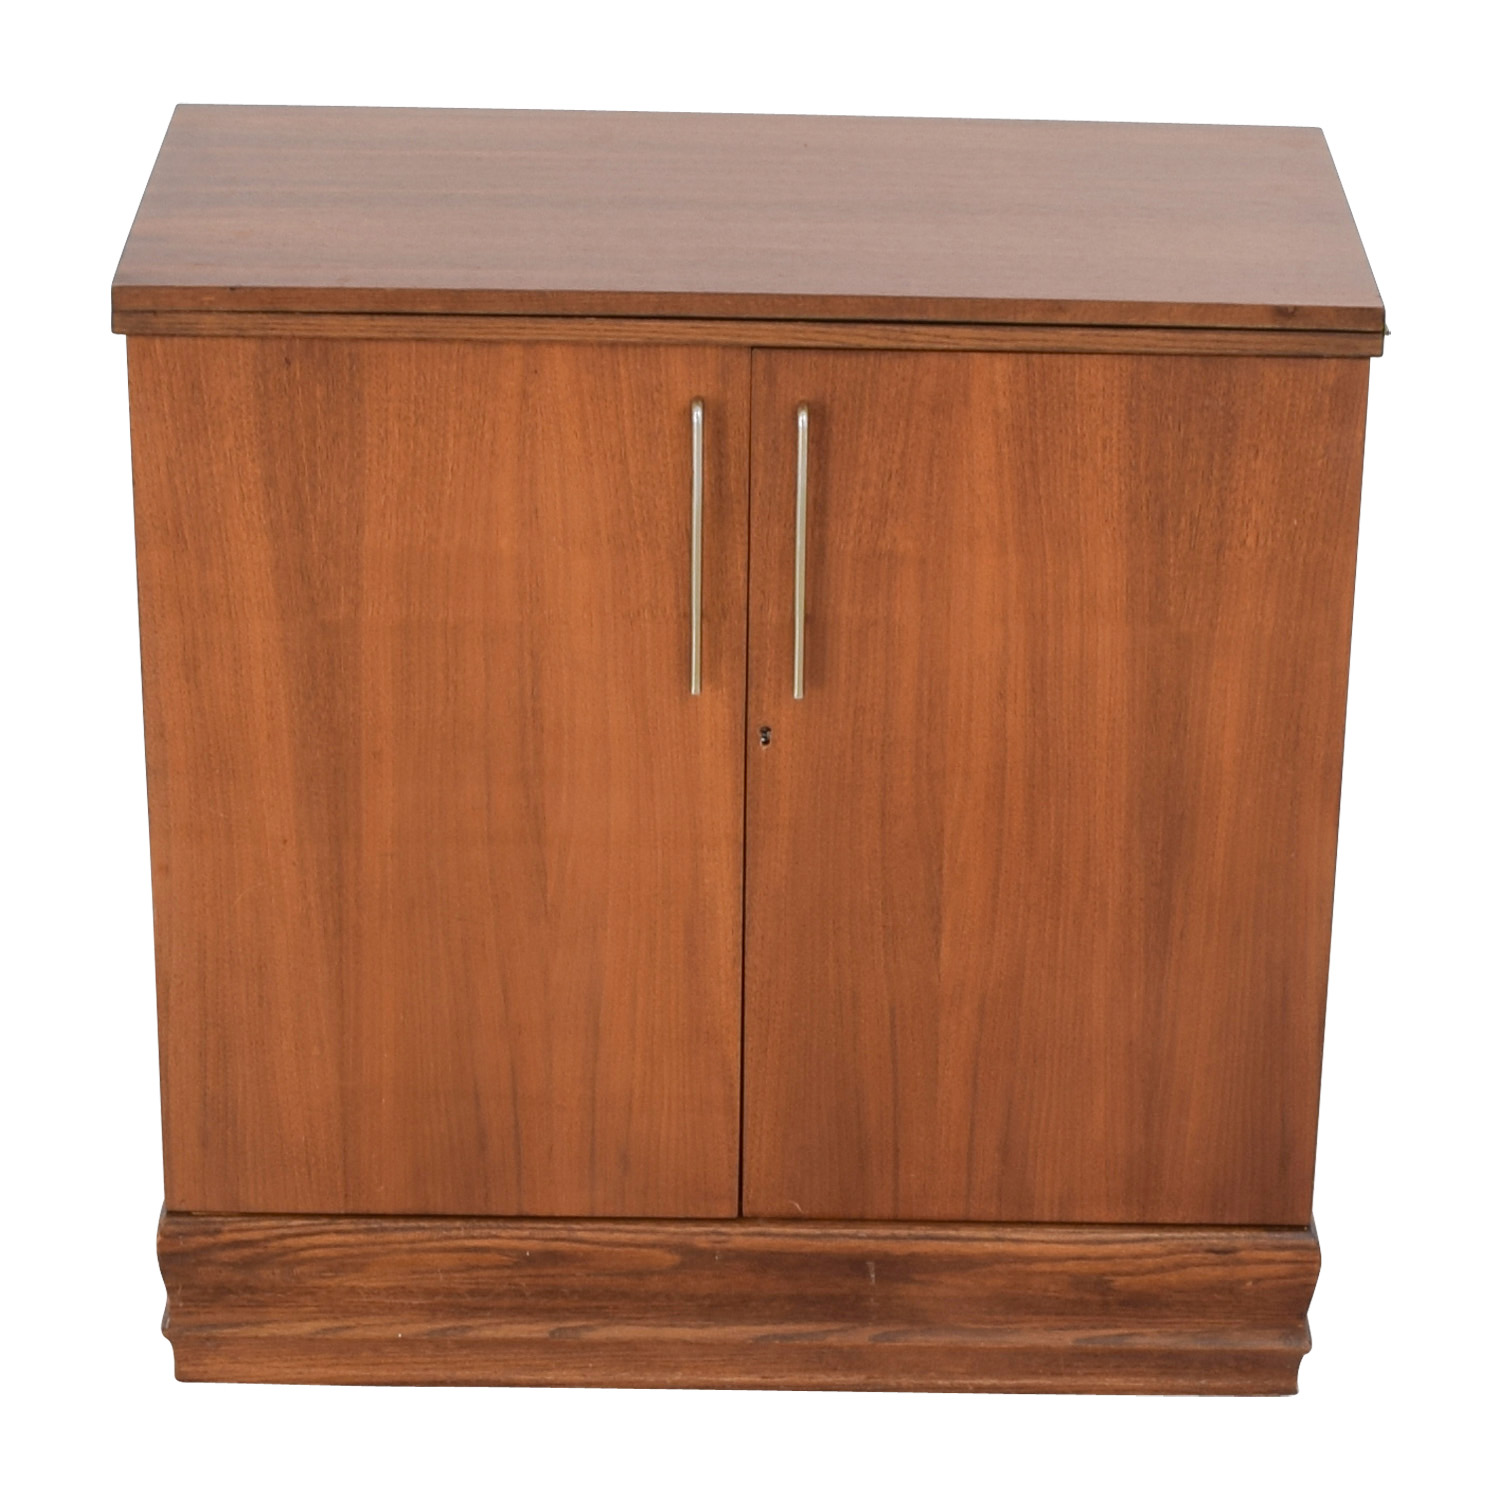 Saginaw Furniture Shops Saginaw Furniture Shops Mid Century Expandable Bar Cabinets & Sideboards